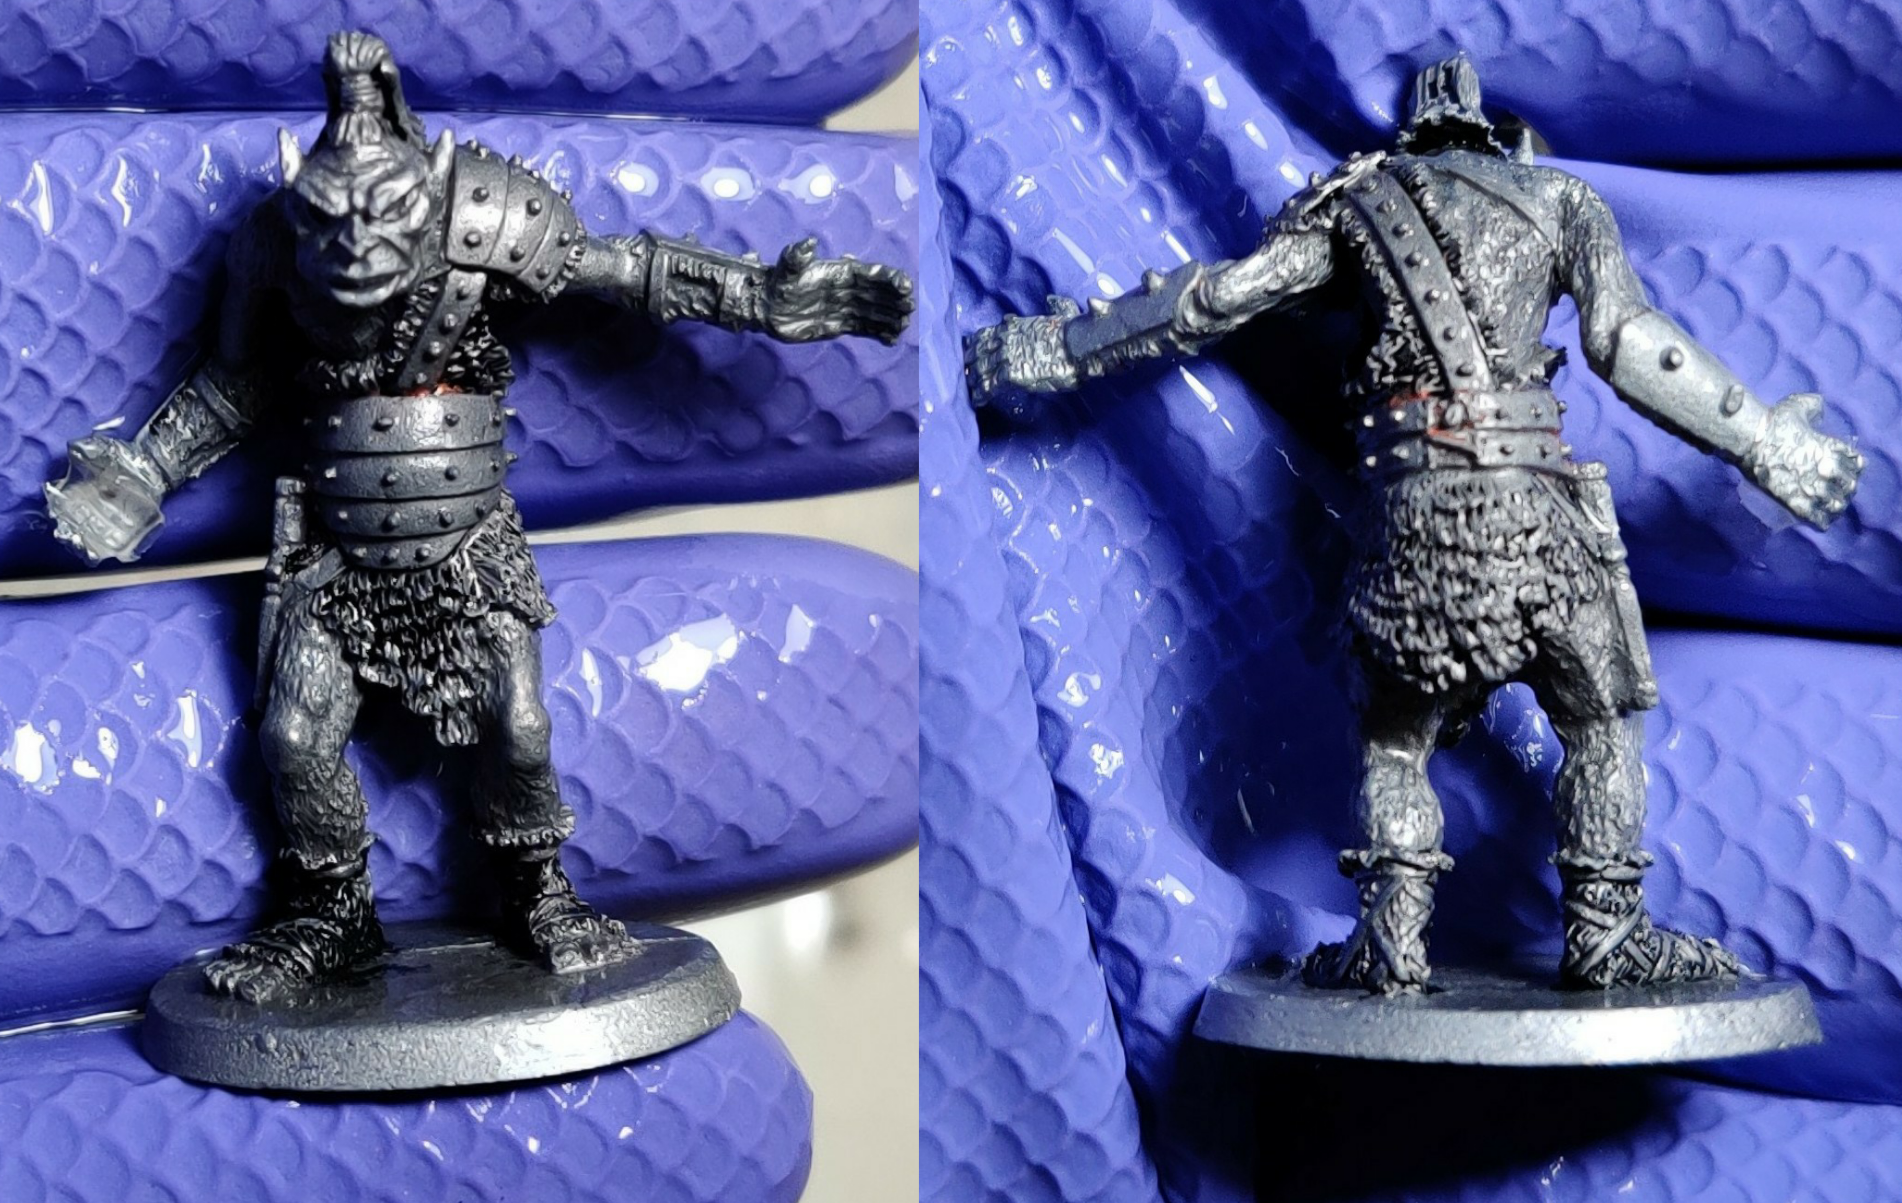 Another Ral Partha ogre mostly clean of paint.